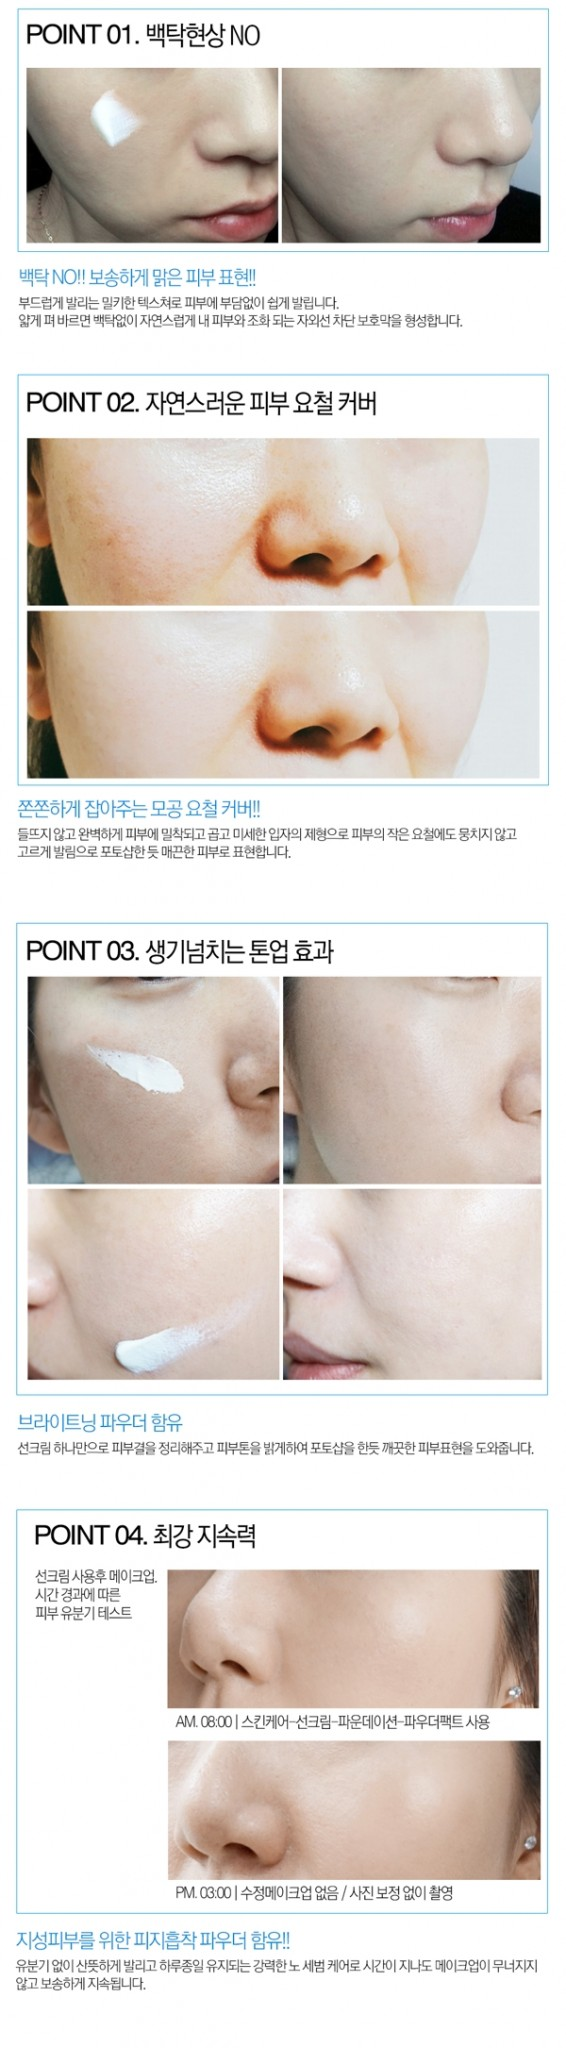 Kem Chong Nang Nang Tone Da Carenel No Sebum Perfect UV Shield SPF50 (6)